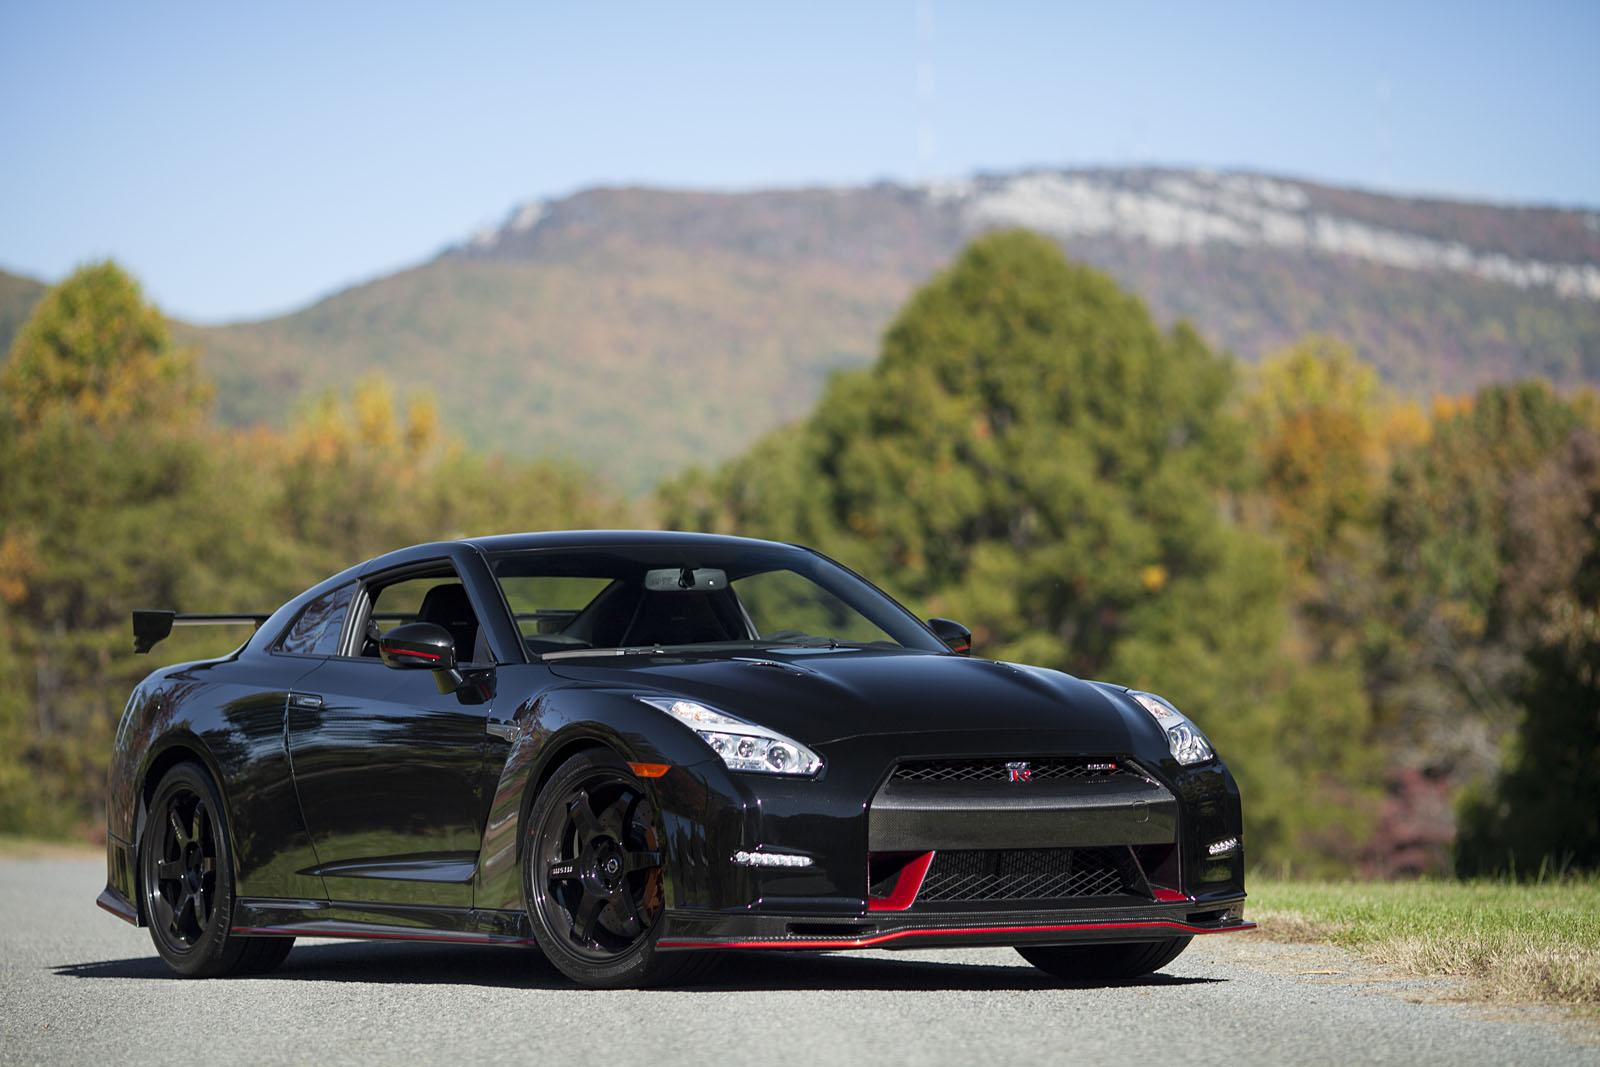 Here's the First US Delivery of the 2015 Nissan GT-R Nismo ...